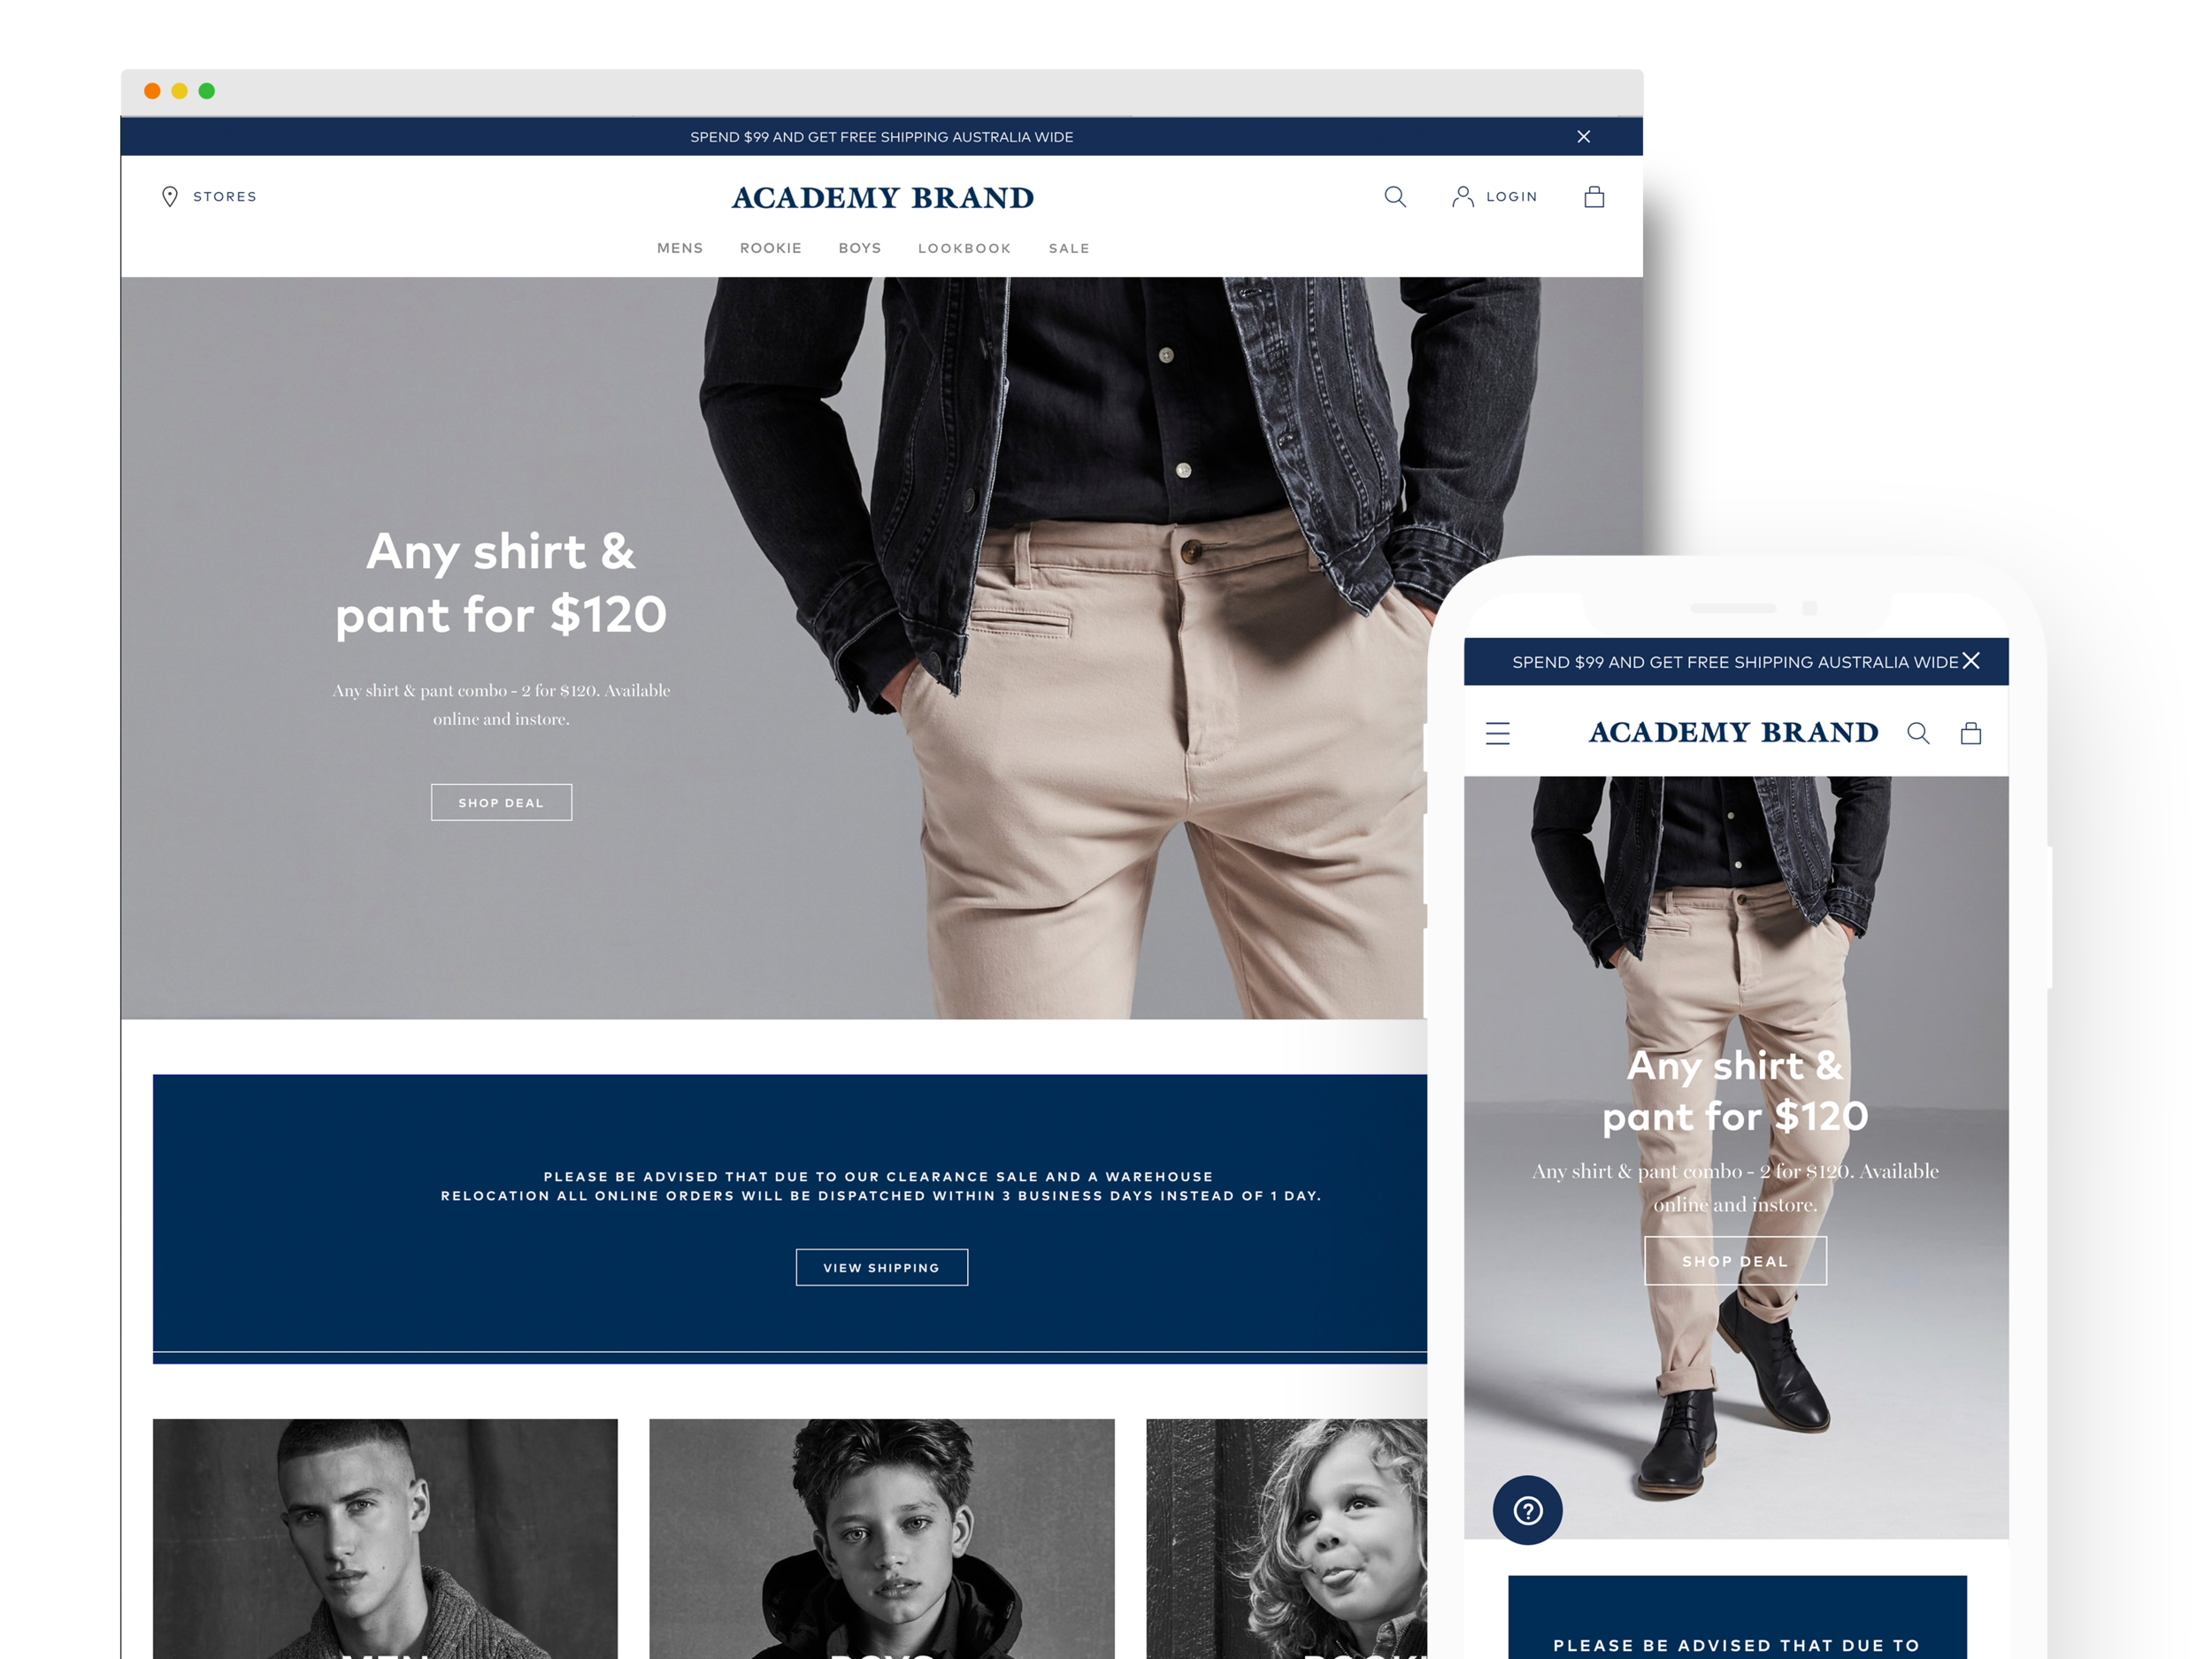 Why Shopify Plus? - Full storefront customisation and no product limits.Multiple sales channels from a unified platform with a host of powerful analyticsMore payment gateways and integration products than any other ecommerce provider.No upgrades, patches and point releases – ever – as a fully hosted solution with 99.9% uptime and 24/7 monitoring.Trusted by to power the sites of more than 500,000 businesses around the world including brands like RedBull and The New York Times, selling more than $46 billion worth of products.